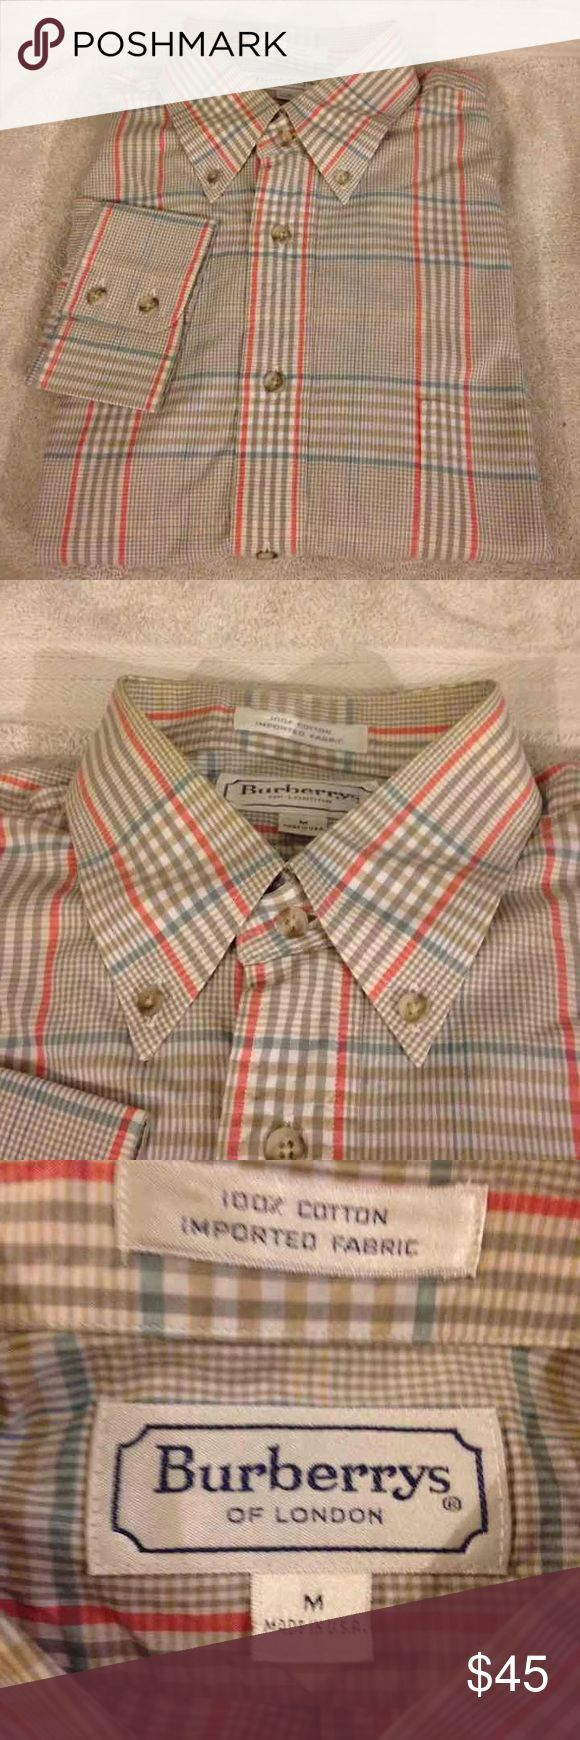 Burberry Tan, Blue & Red Plaid Shirt M Burberry Tan, White, Blue and Red Plaid Nova Check Shirt size M Medium! Great condition! Please make offers and bundle! Ask questions! :) Burberry Shirts Casual Button Down Shirts